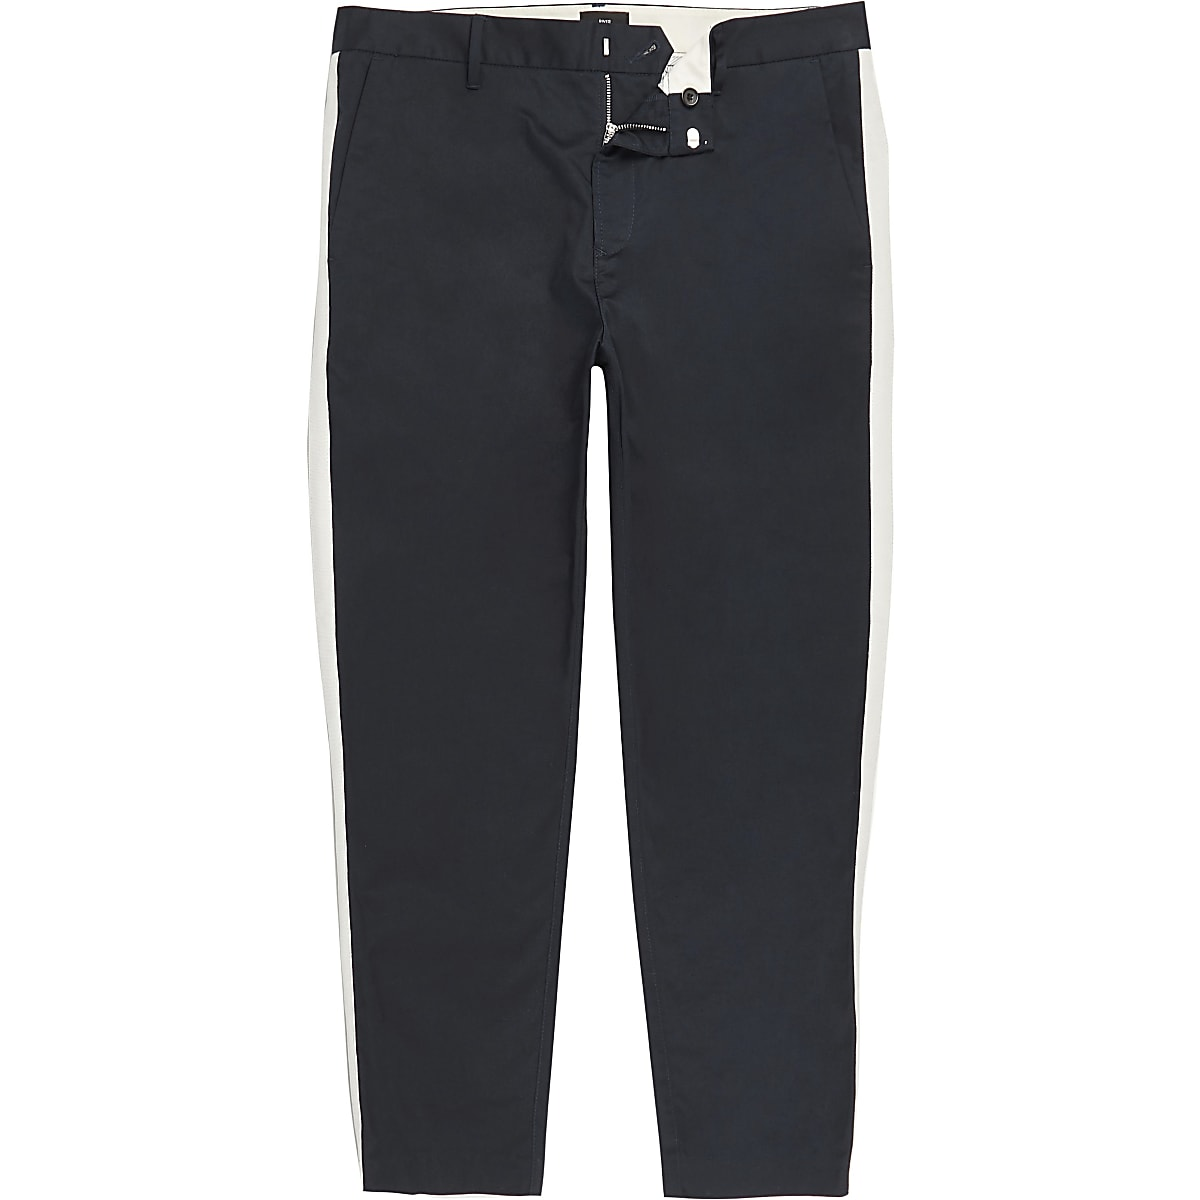 Big and Tall – Pantalon skinny bleu marine à bandes latérales